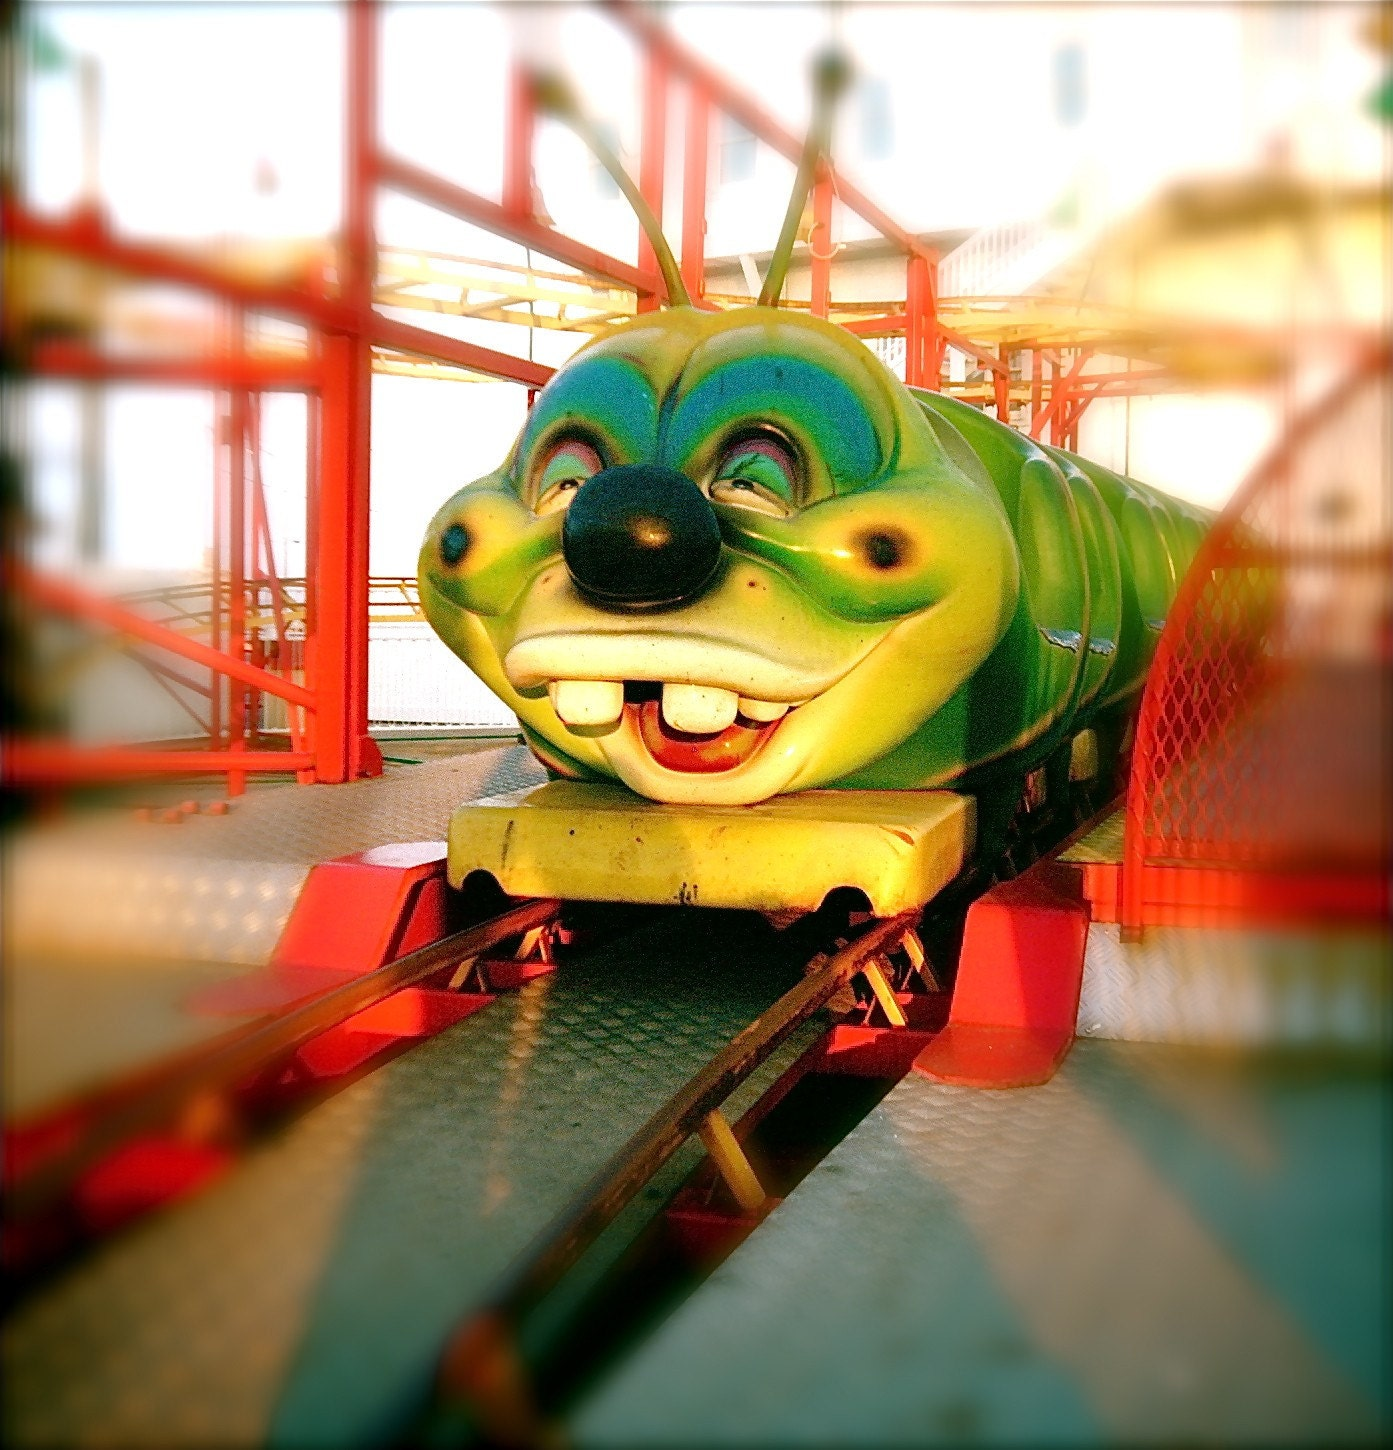 Toothy - smiling caterpillar carnival ride Fine Art Carnival Photograph, Handmade Philly team, 8x8 print - heatherexley